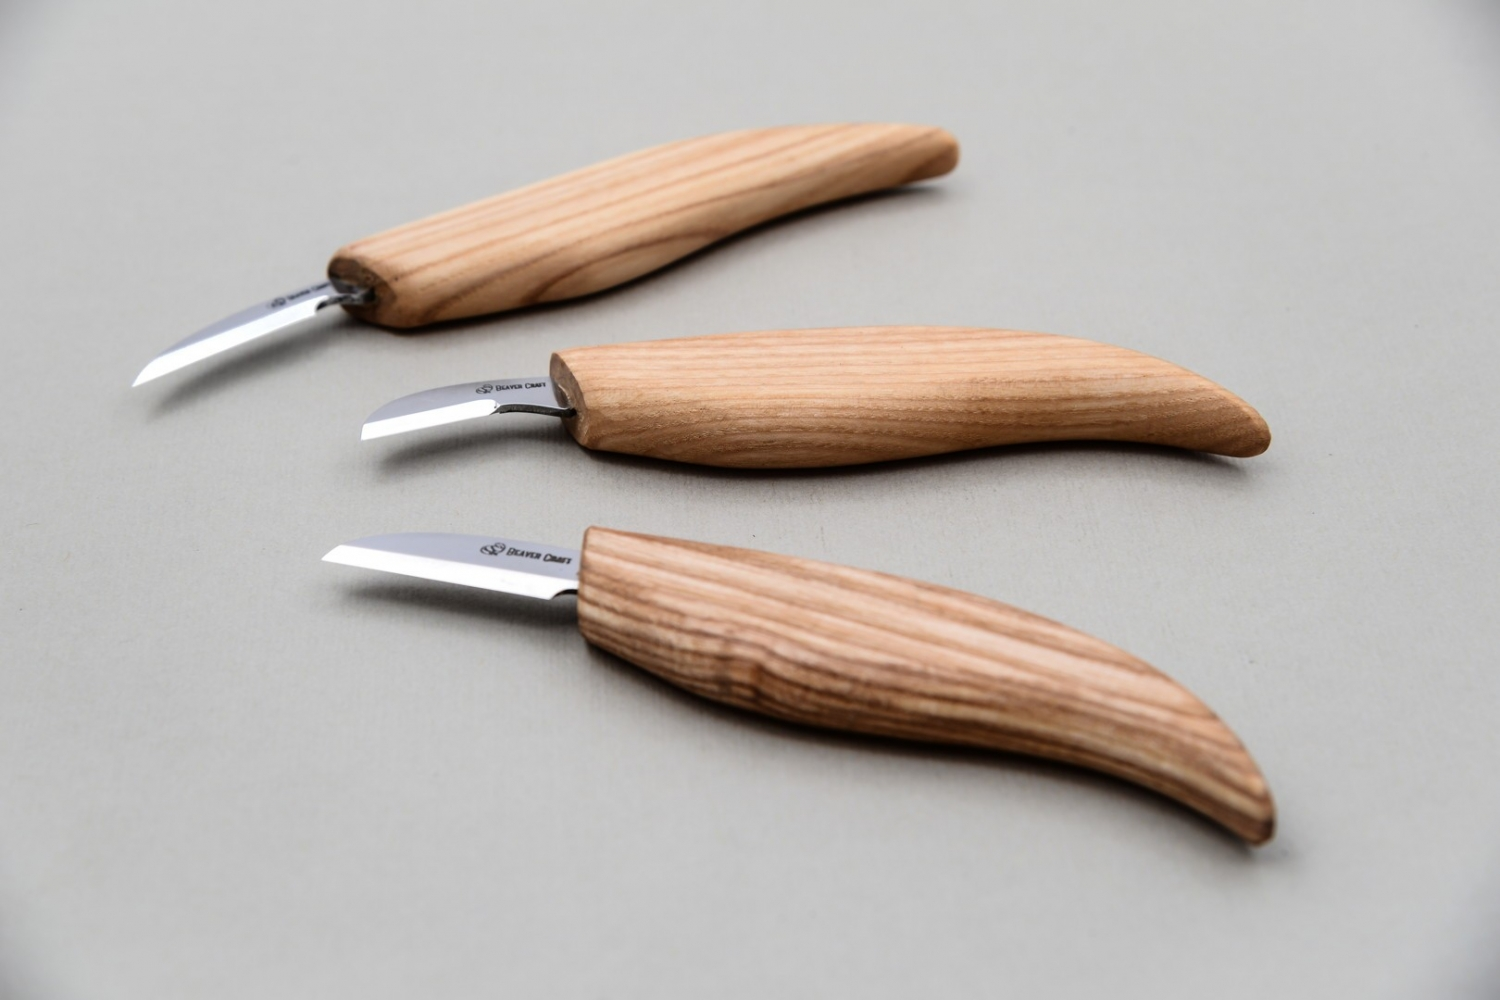 Beaver craft tools s06 u2013 chip carving knife set with accessories